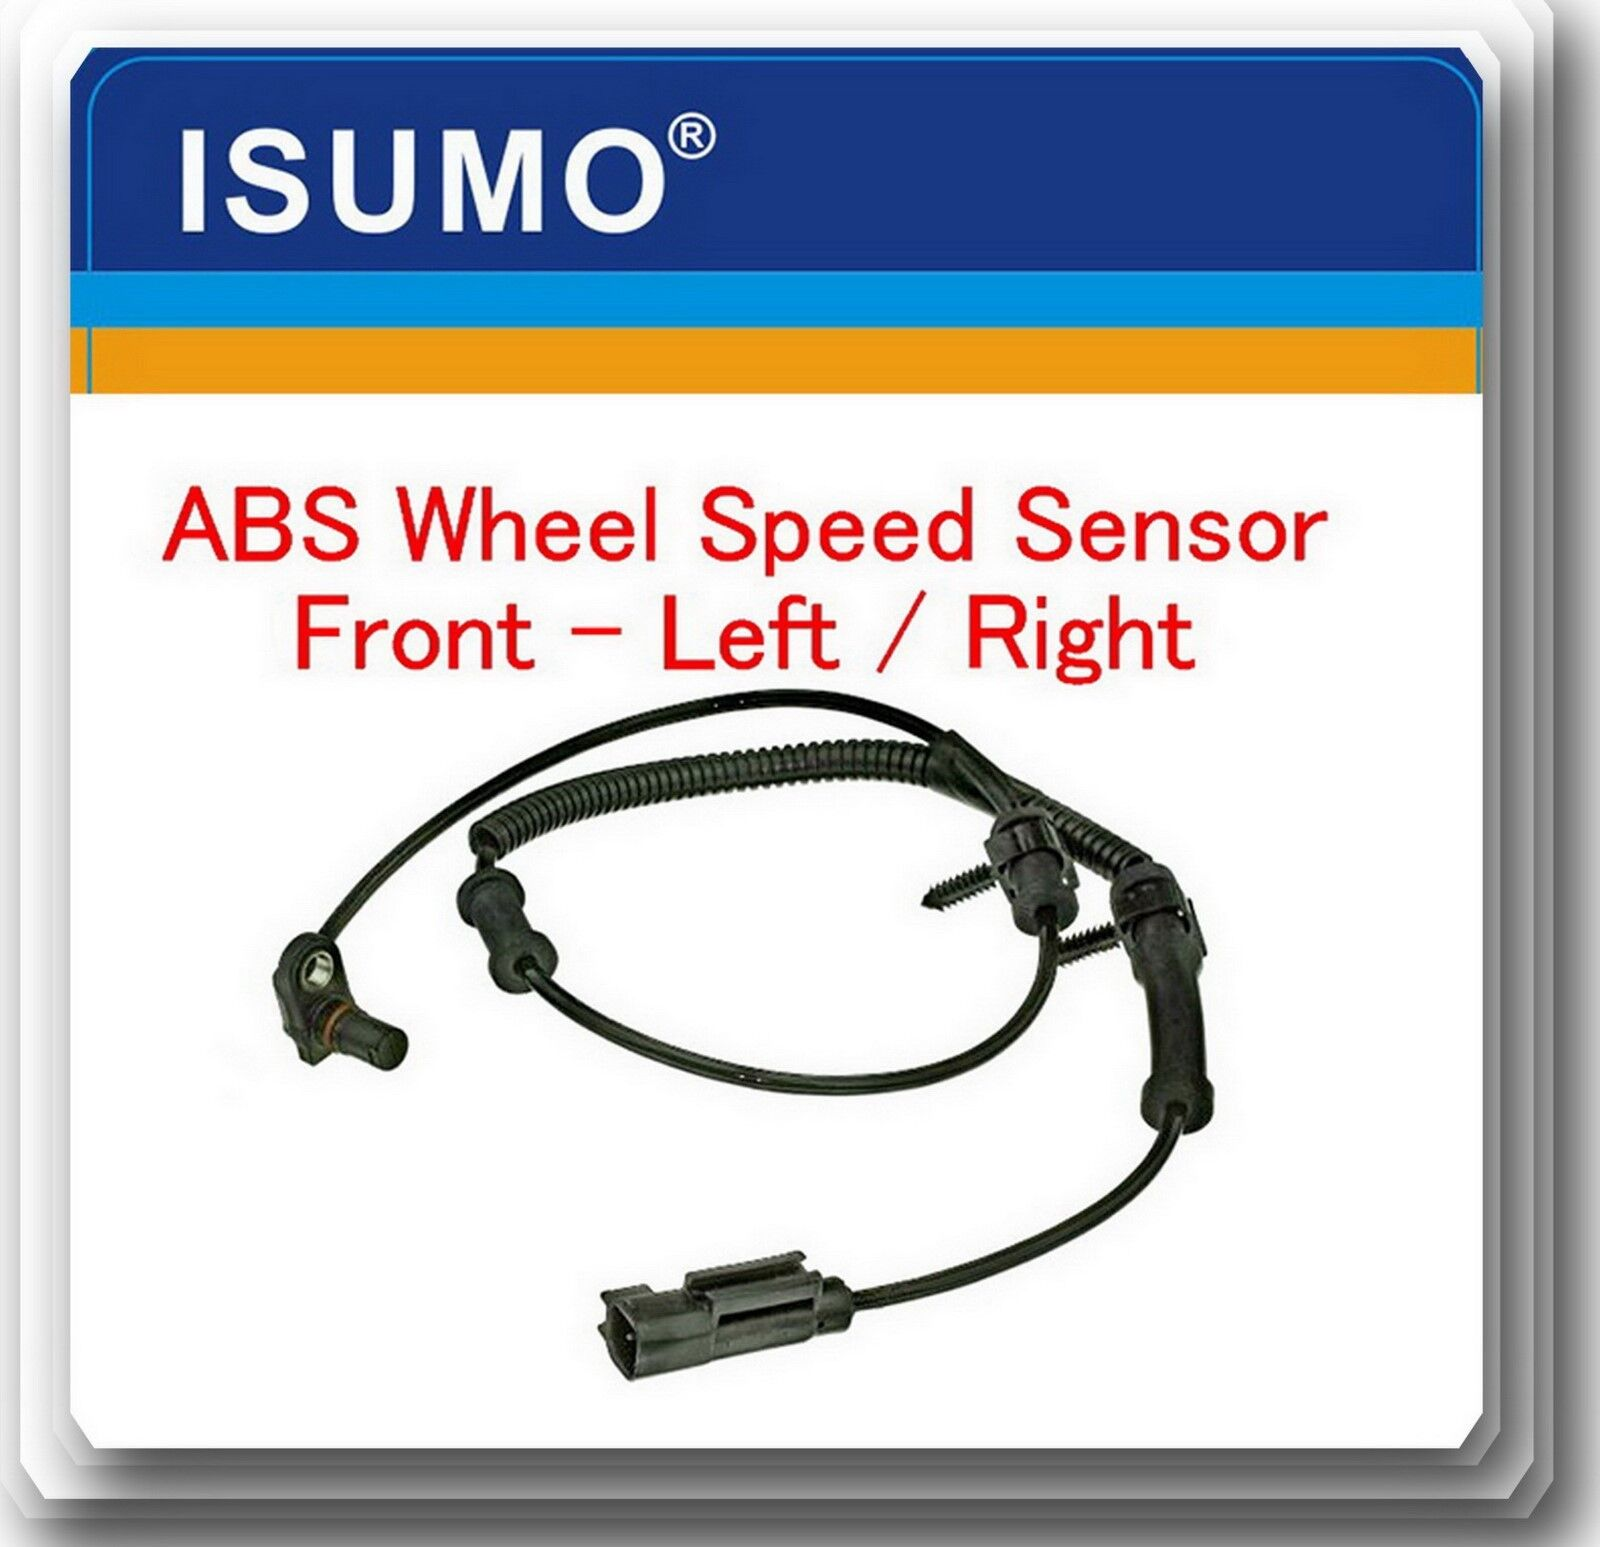 Front Left or Right ABS WHEEL SPEED SENSOR Fits 2002-2005 Ram 1500 Replace ALS104 5S7005 2ABS0177 AB1733 V33720019 970220 5083204AA 5083204AB